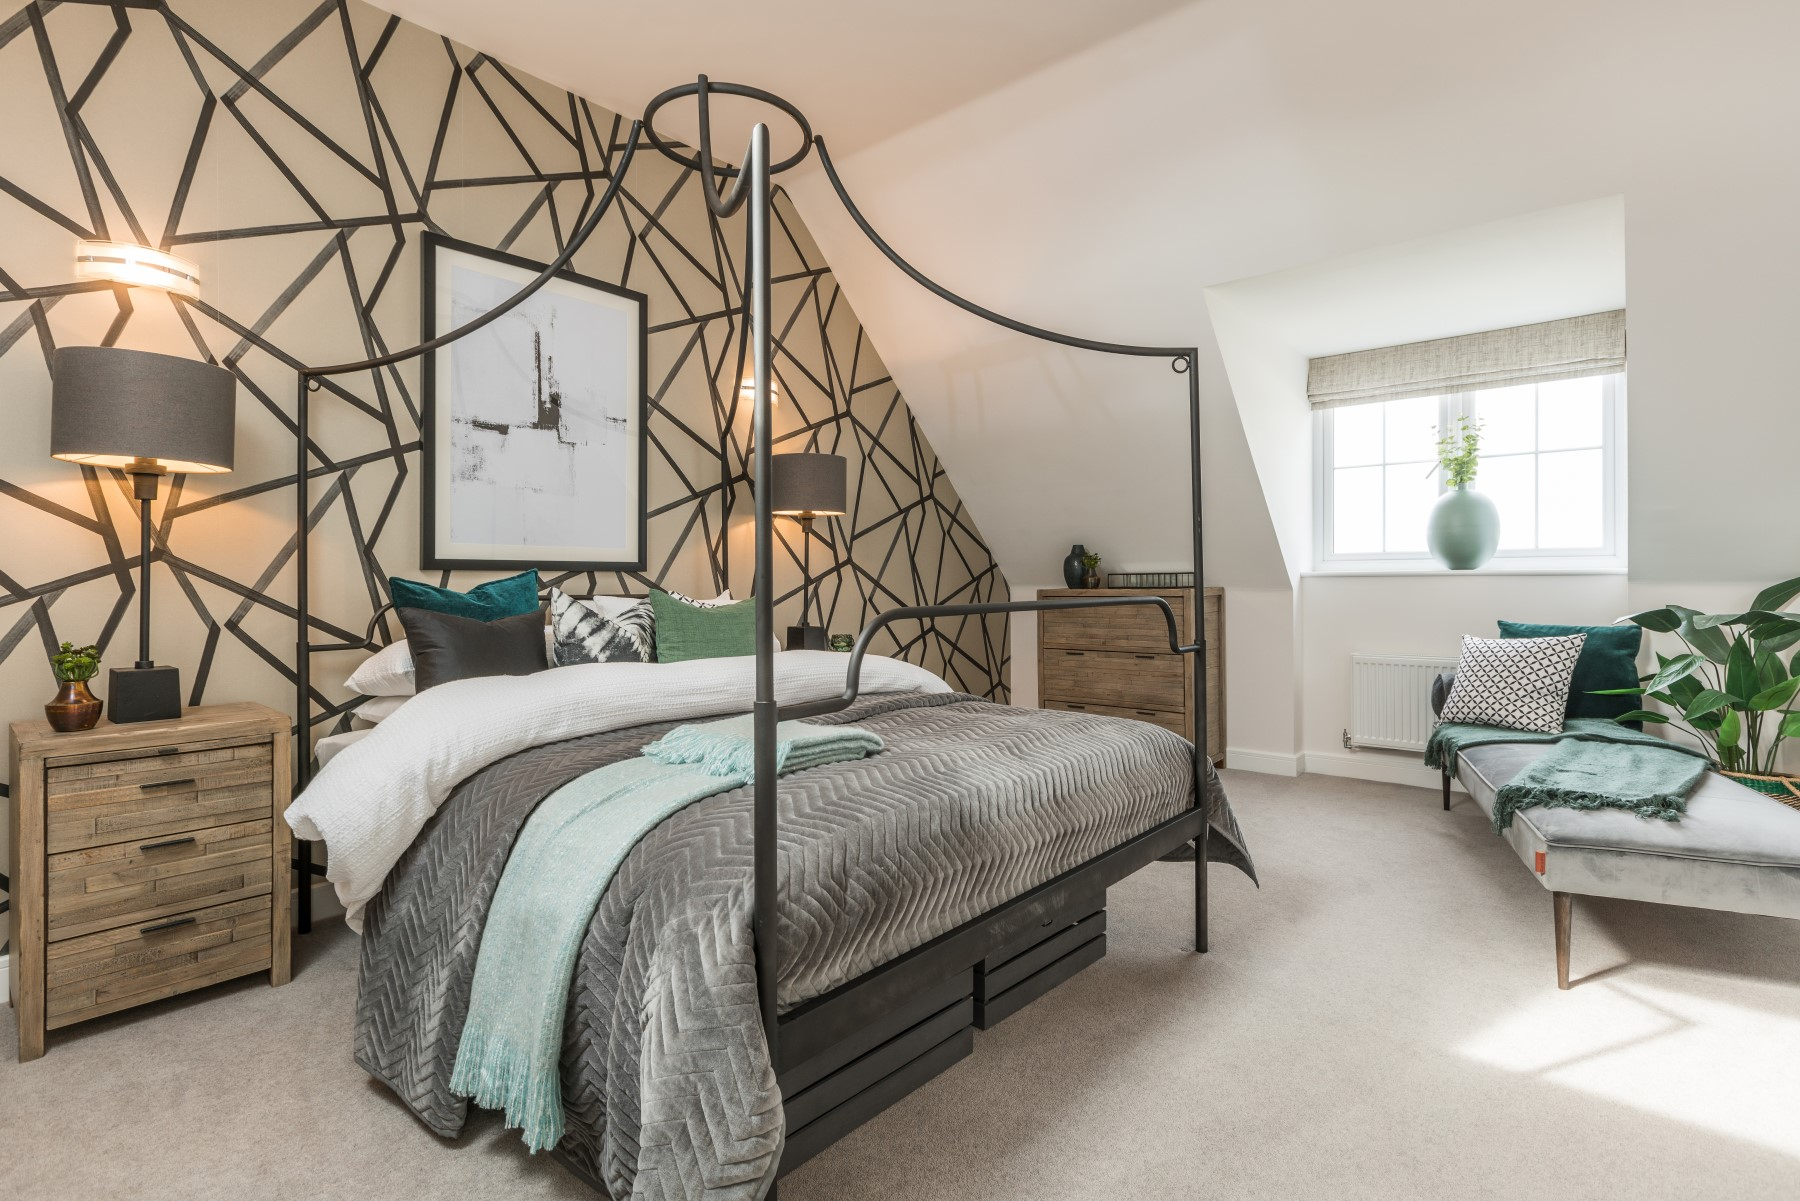 TW_SC_Hedgerows_PB33_Crofton_Bedroom 1 1